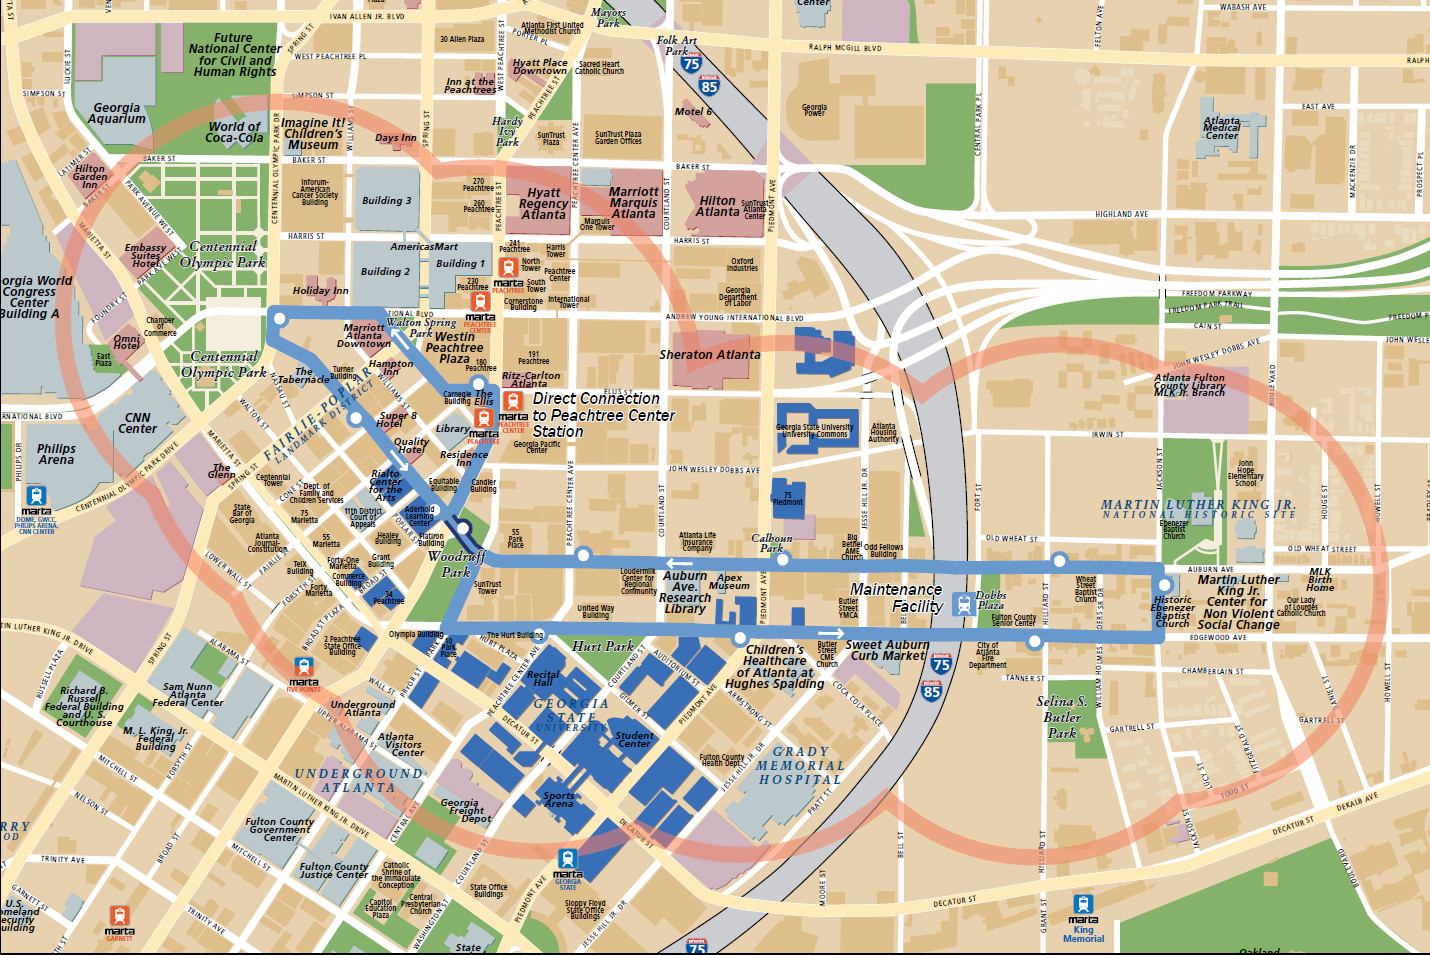 Georgia State University Map Swimnovacom - Georgia map template